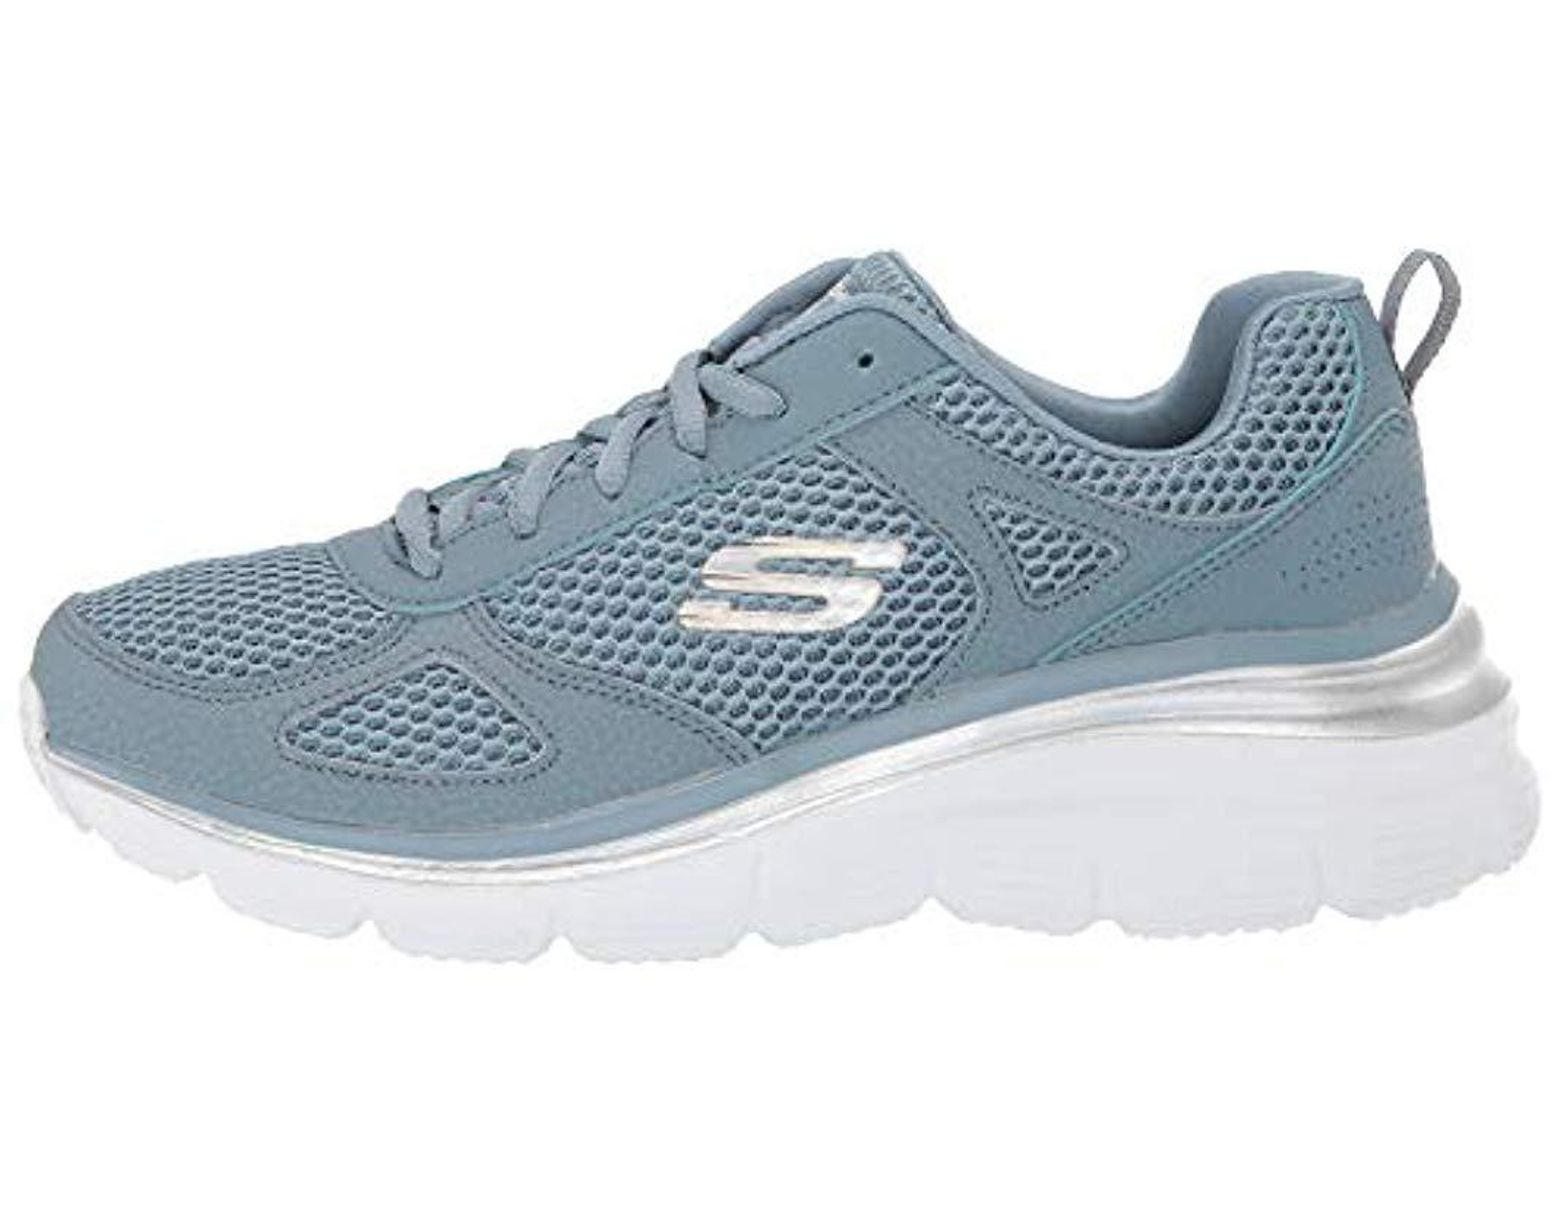 Fashion In Lyst Skechers Mate Blue Perfect Fit Sneaker O80wkNPnX